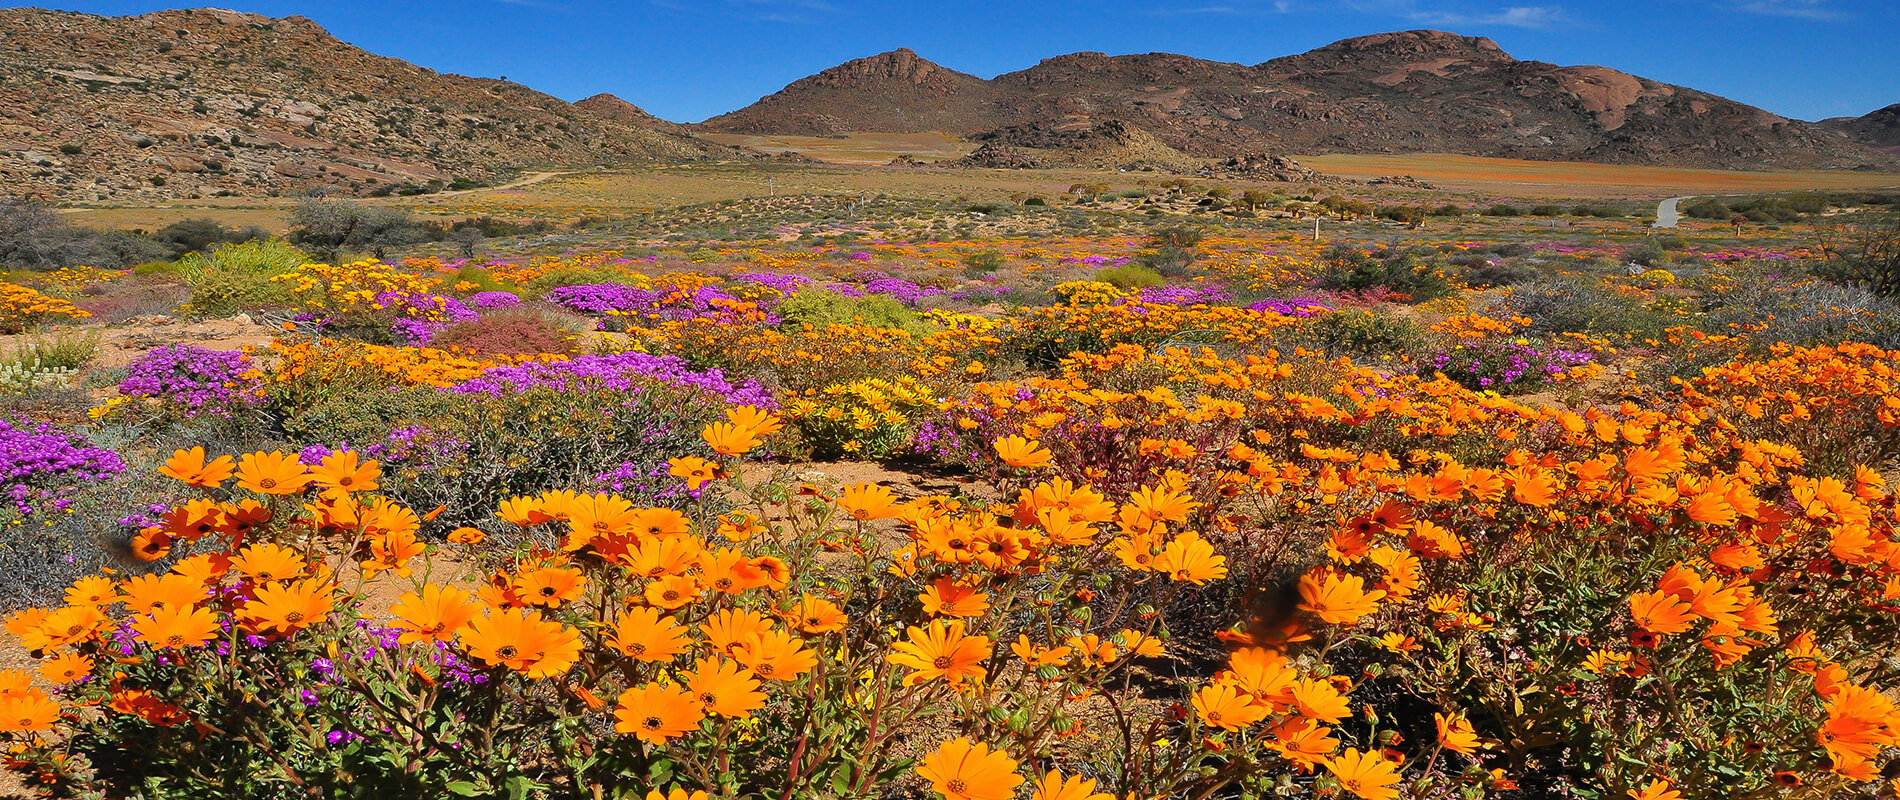 Namaqua National Park, the Magical Blooming Desert of South Africa